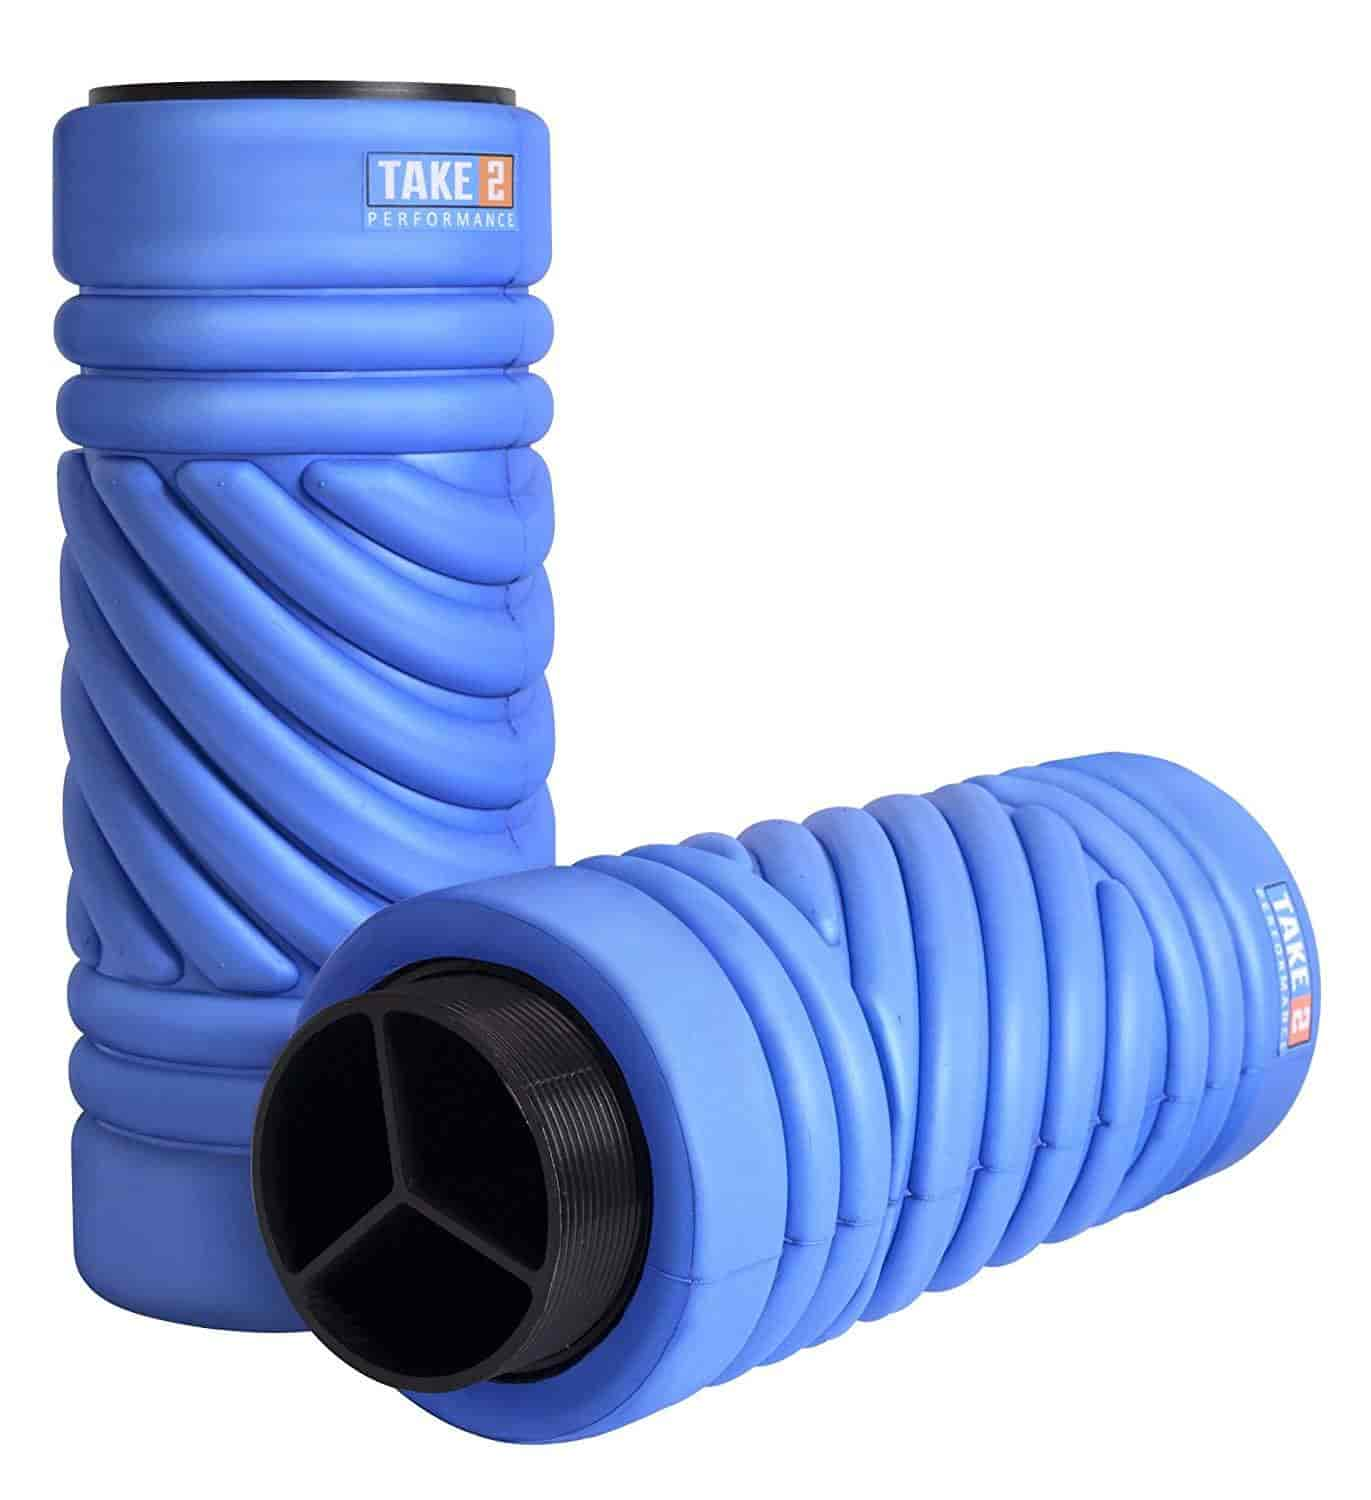 Buy foam roll physical therapy - Adjustable Foam Roller For Muscle Massage Exercise Physical Therapy Best 2 In 1